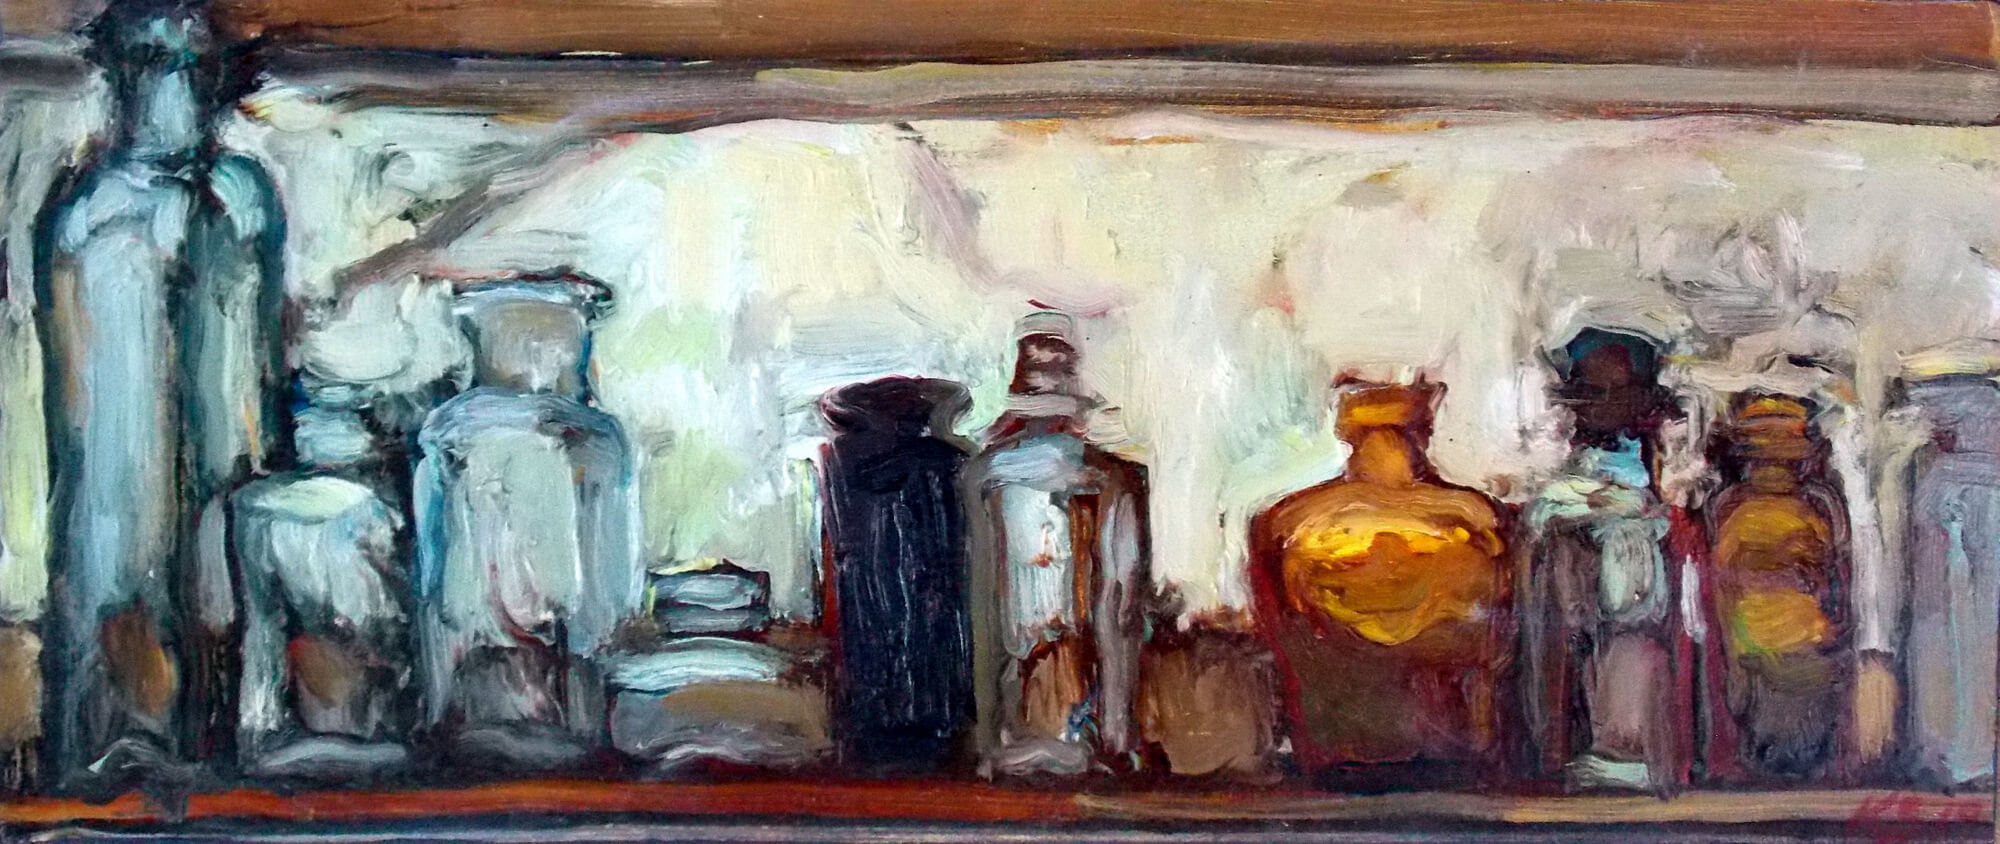 Kim Shannon: Autumn Windowsill, 2019